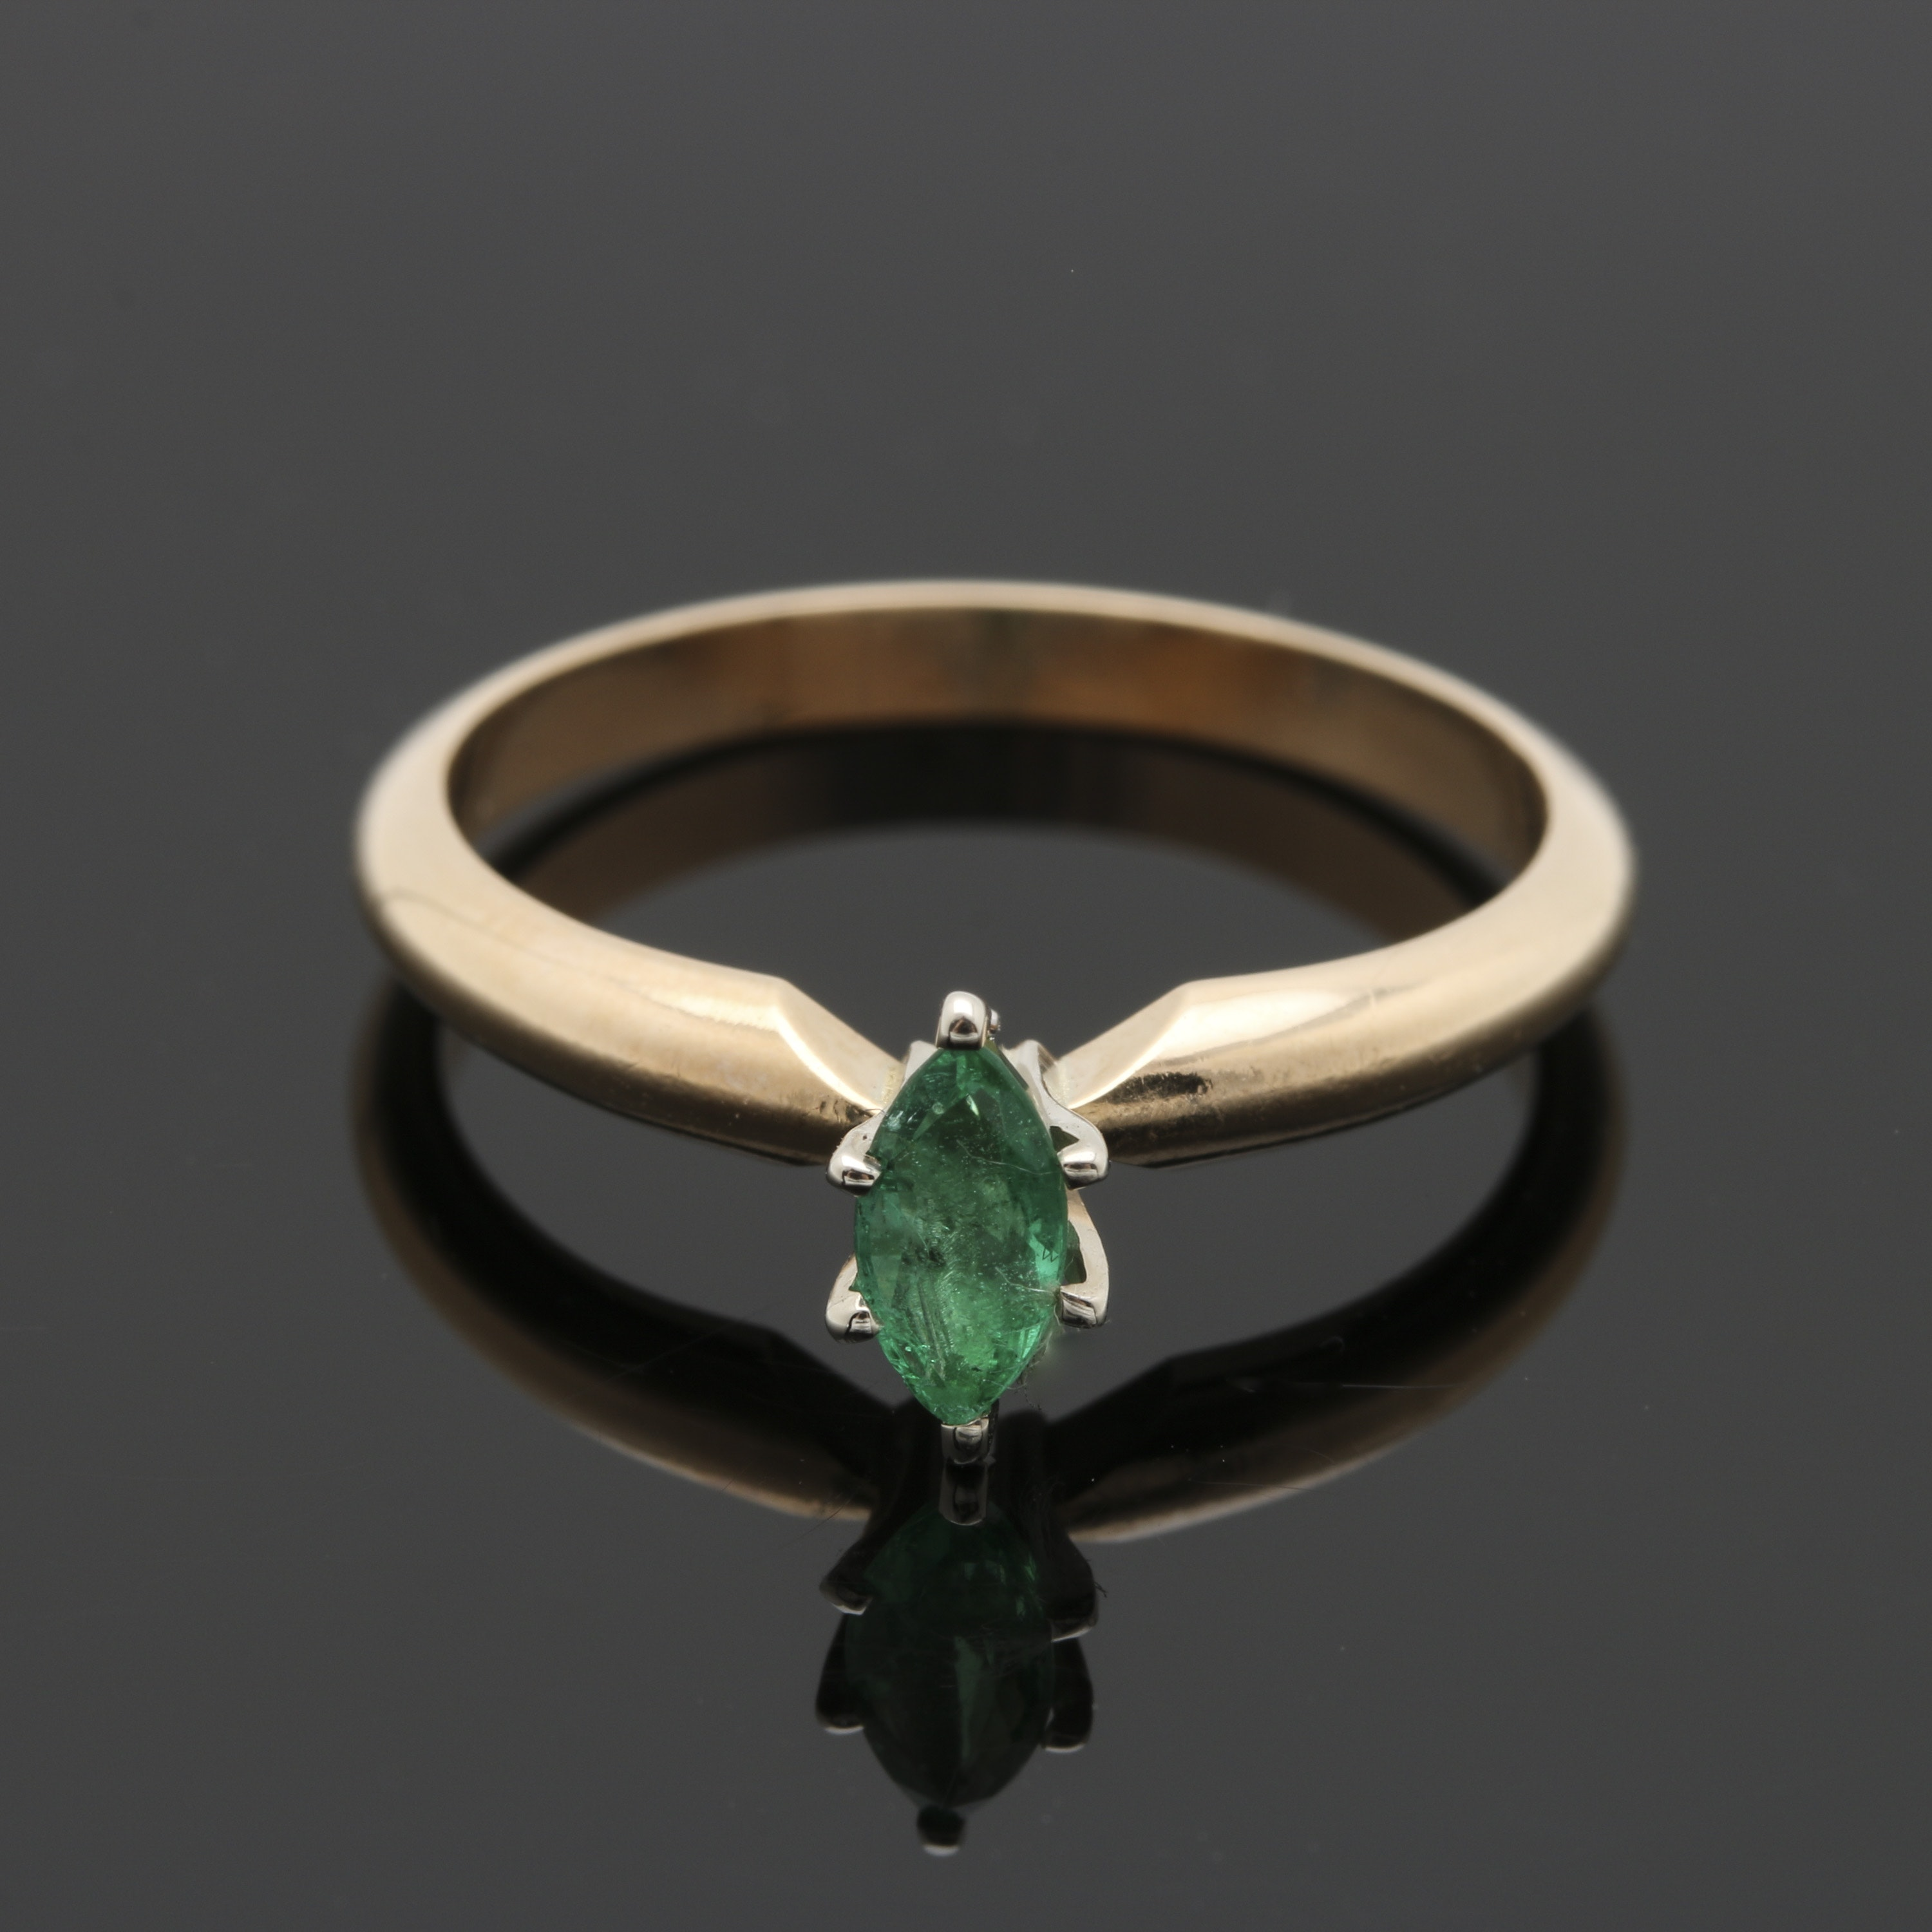 14K Two-Tone Gold Emerald Ring